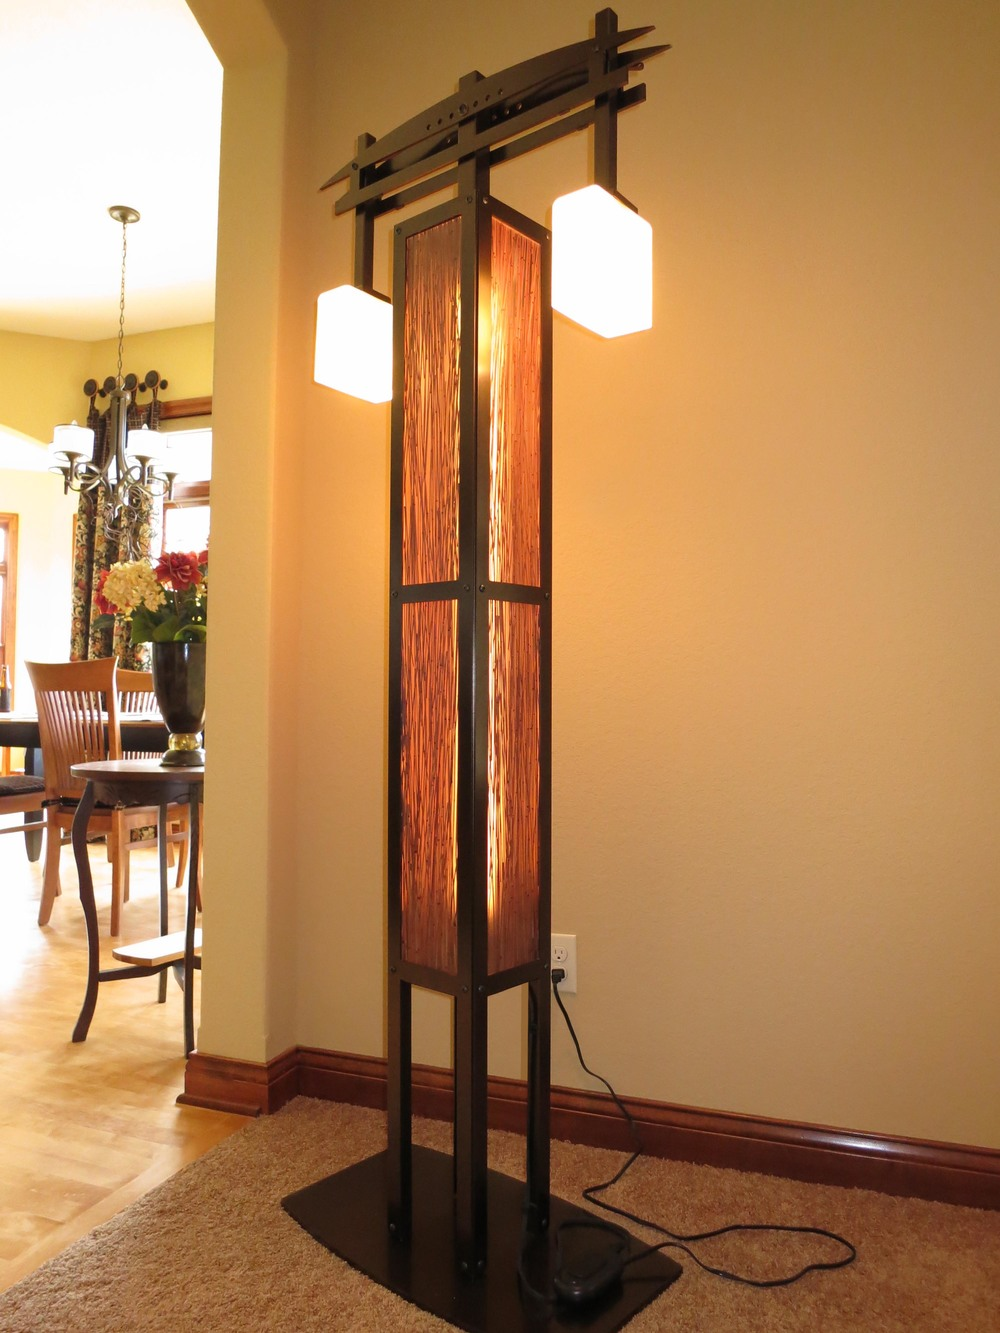 gerber floor lamp.jpg